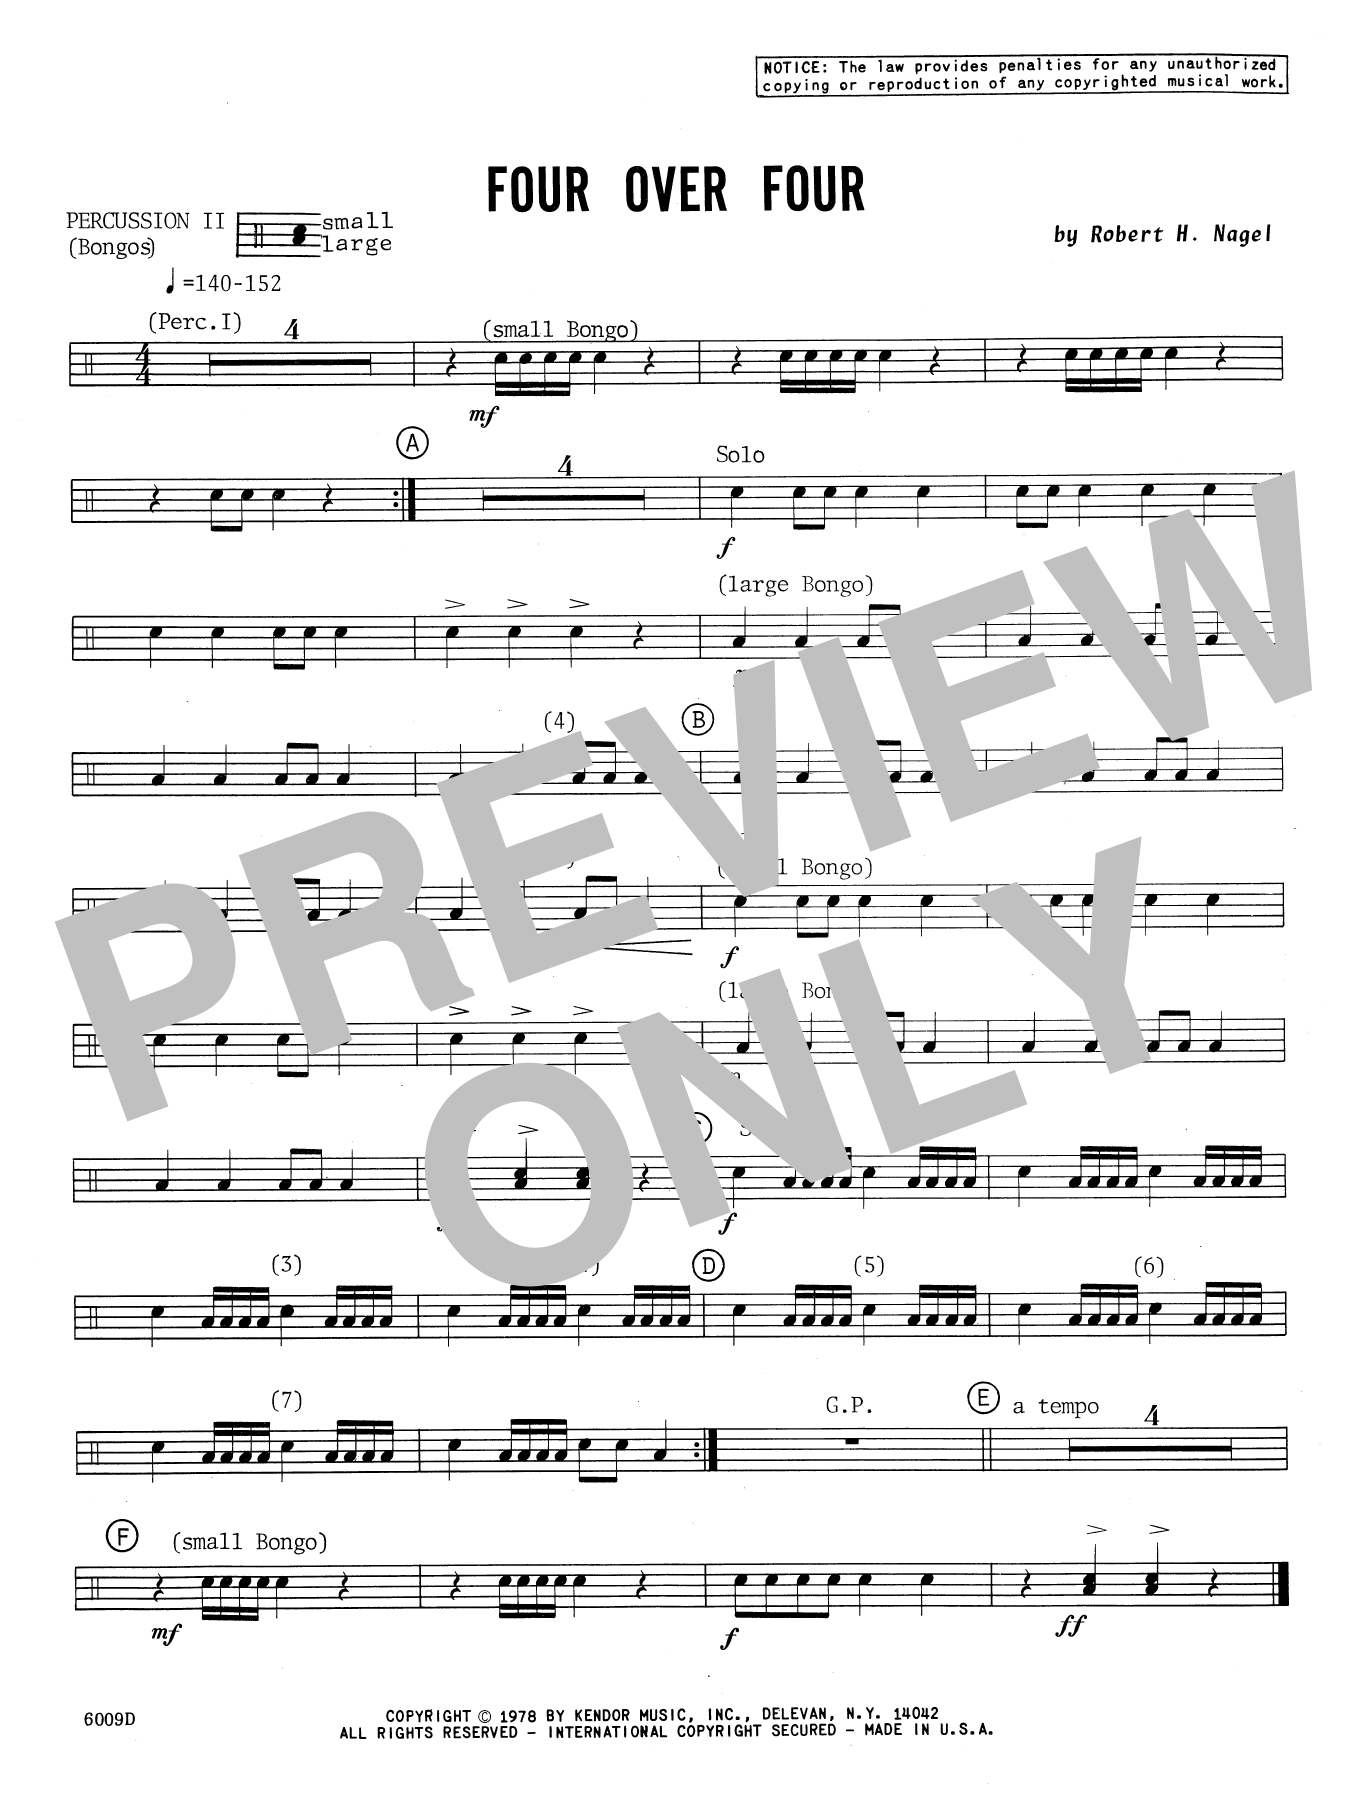 Four Over Four - Percussion 2 Sheet Music